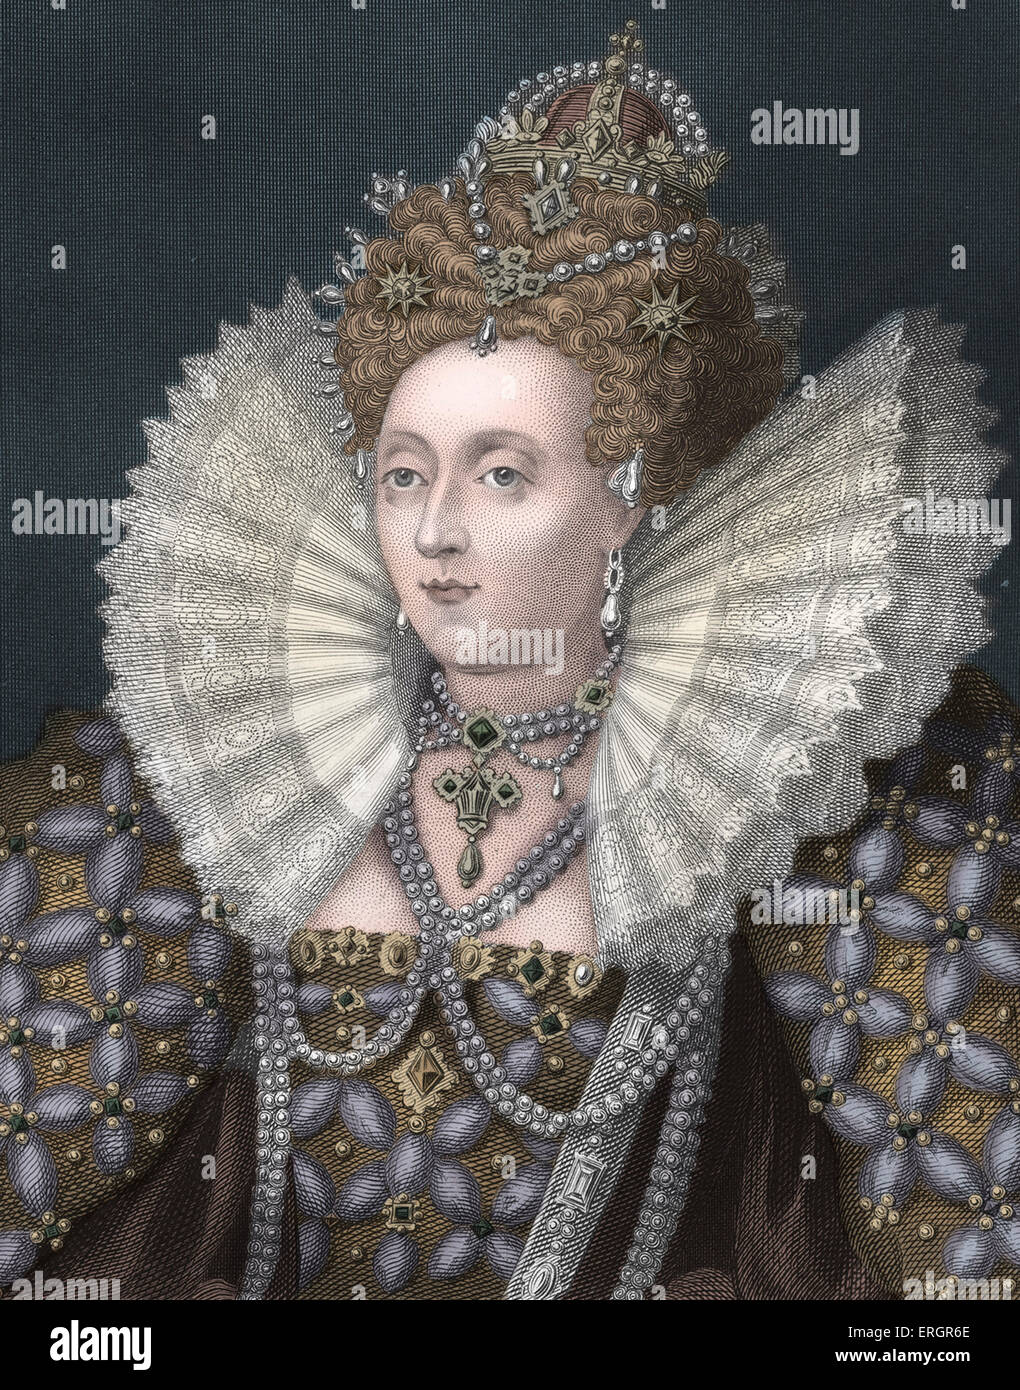 Elizabeth I, portrait. Queen of England from 1558 until her death. 7 September 1533 – 24 March 1603. Stock Photo